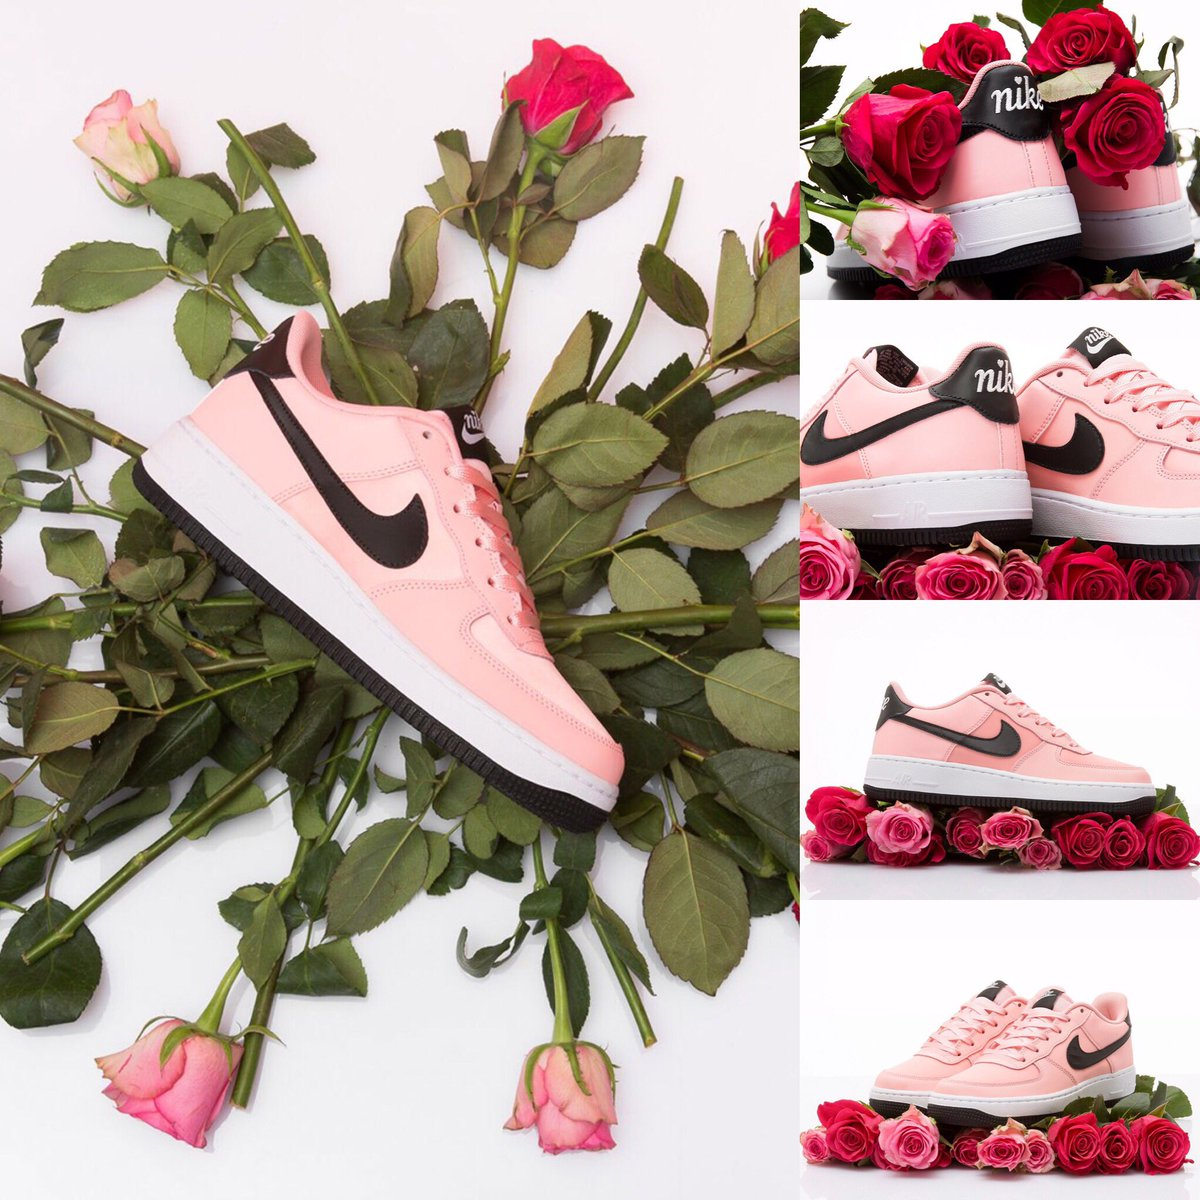 471a9da23c8 Nike Adds The Air Force 1 Low To Its Upcoming Slue Of Valentine s Day  Sneakers